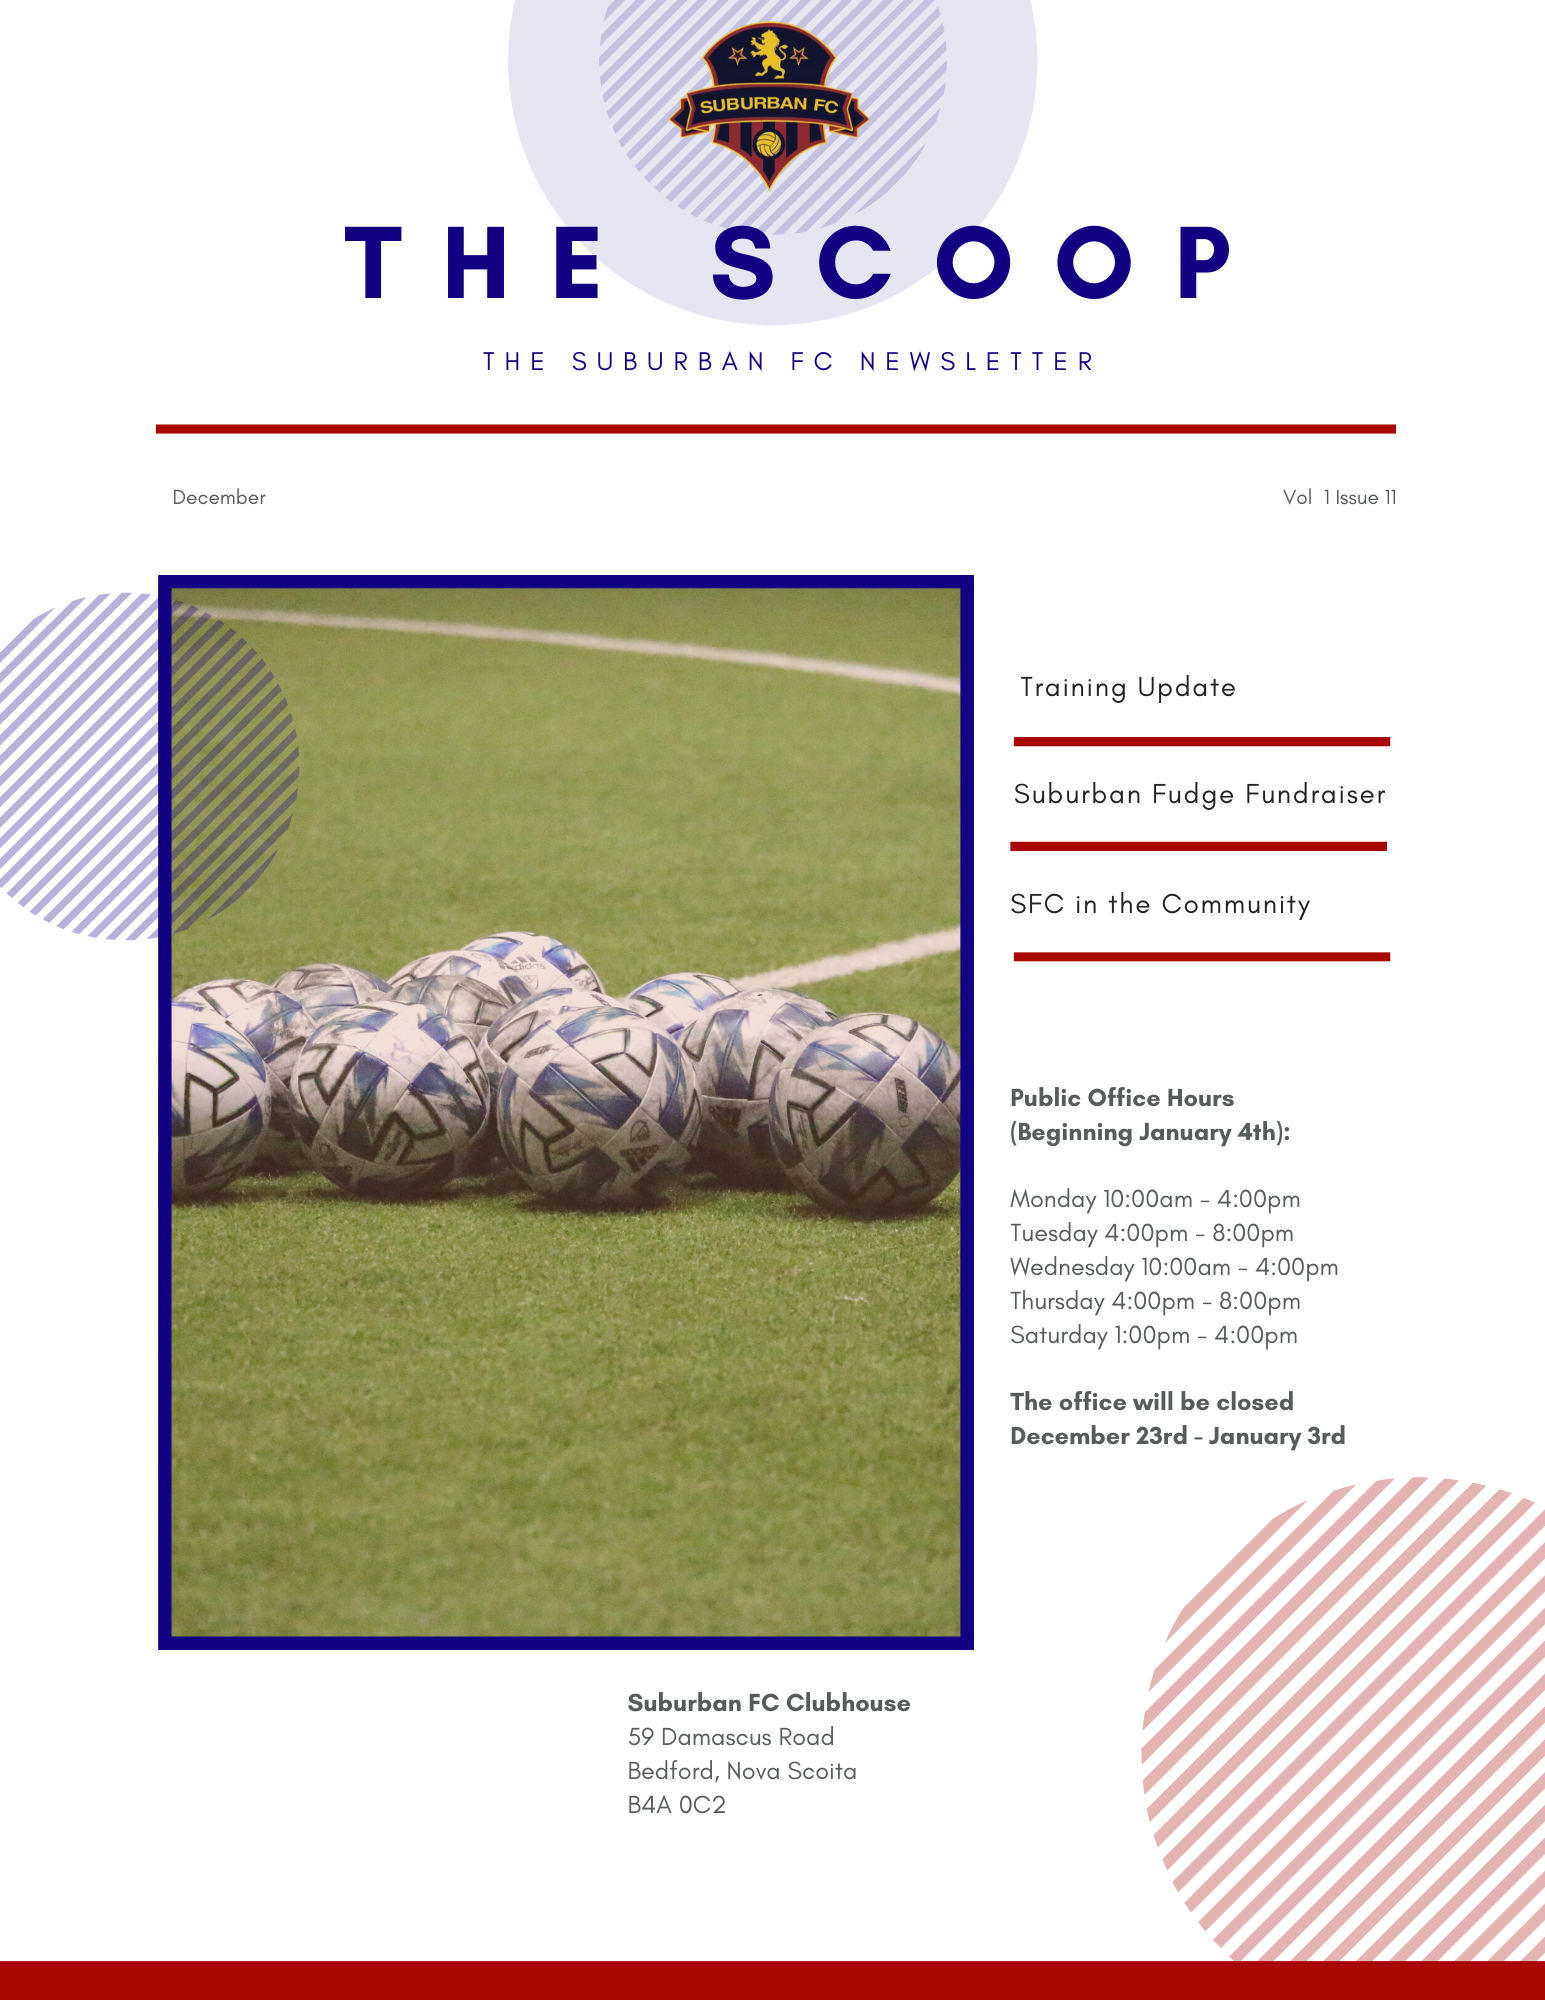 The Scoop - December Edition